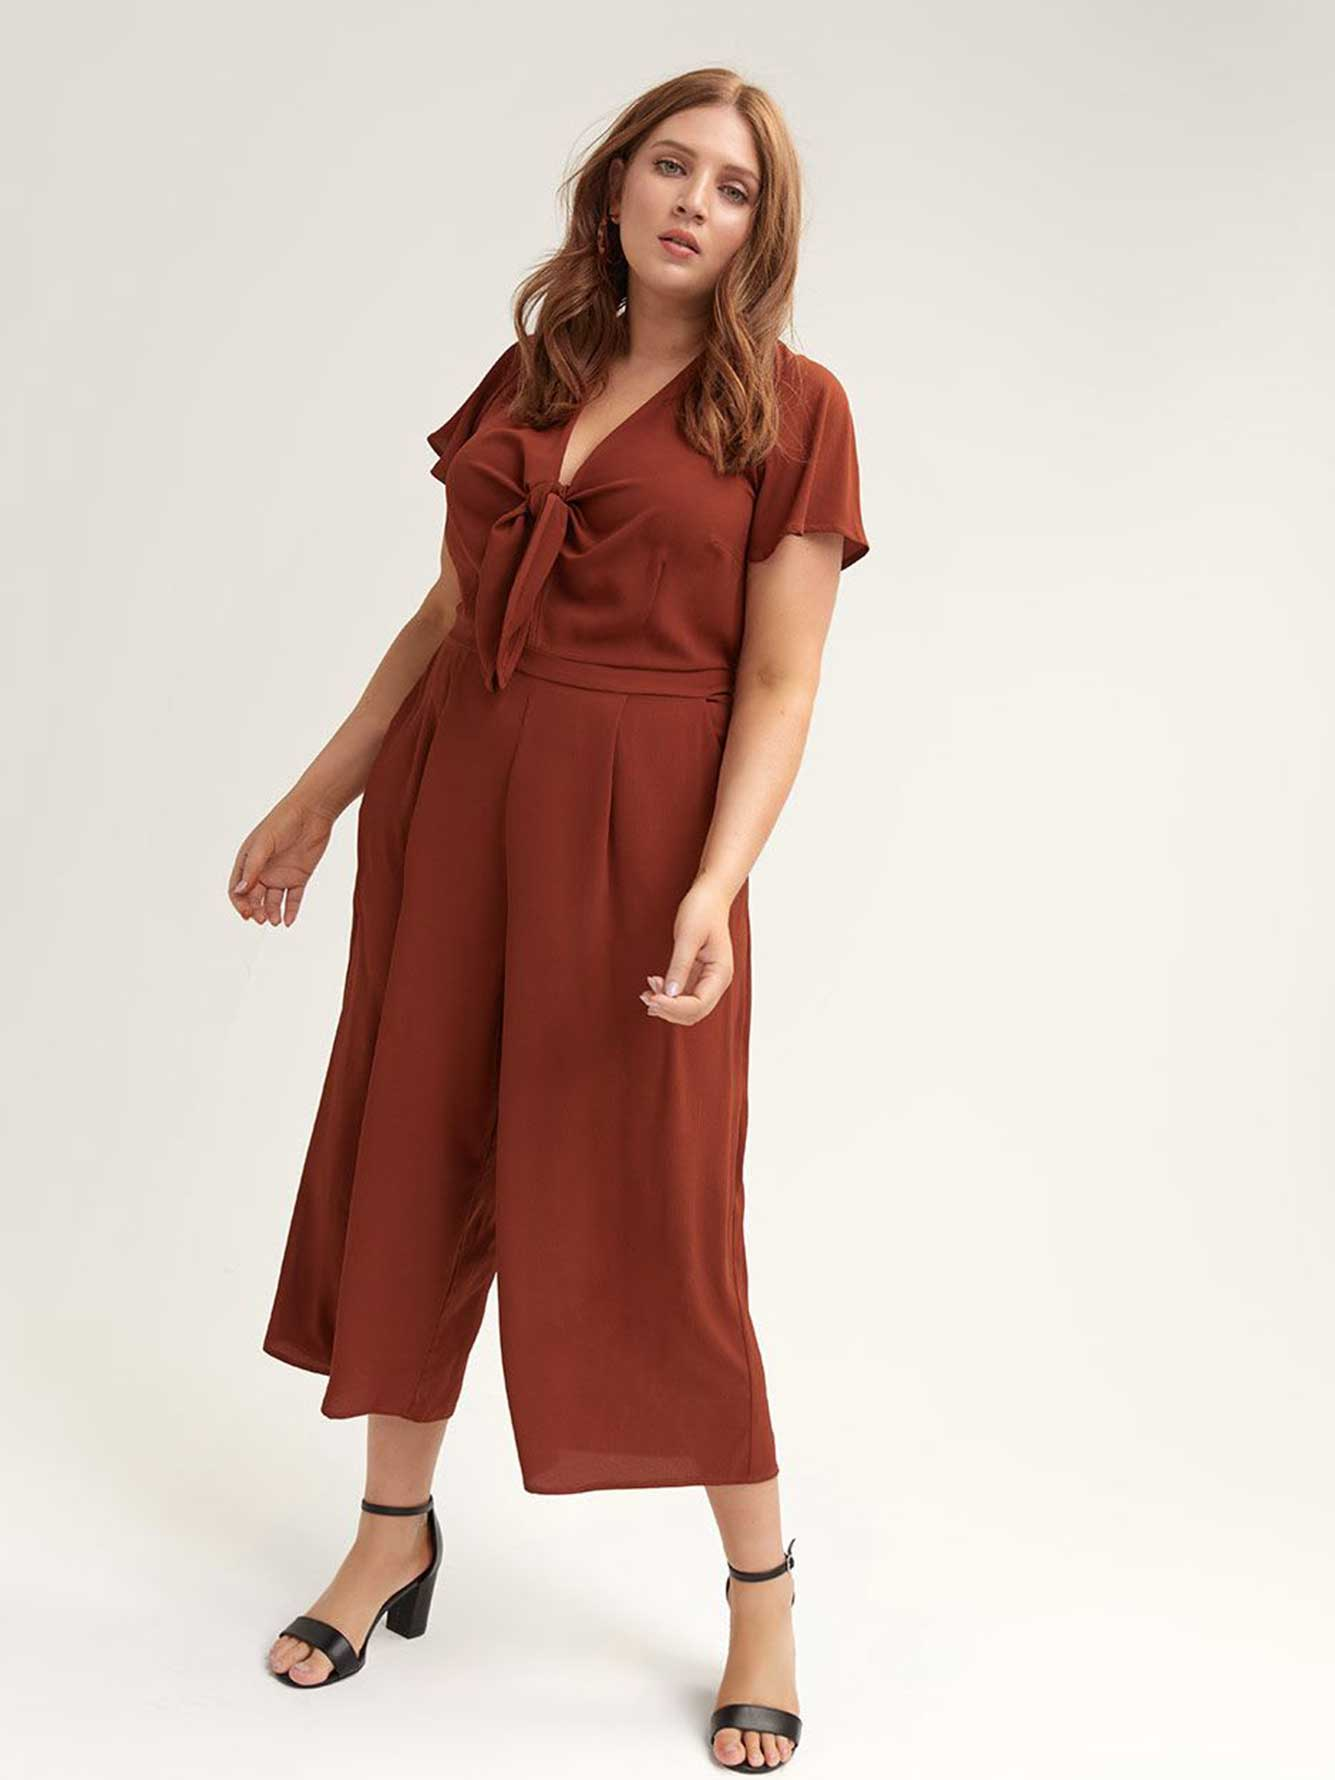 One-Piece Jumpsuit Knotted Front - City Chic